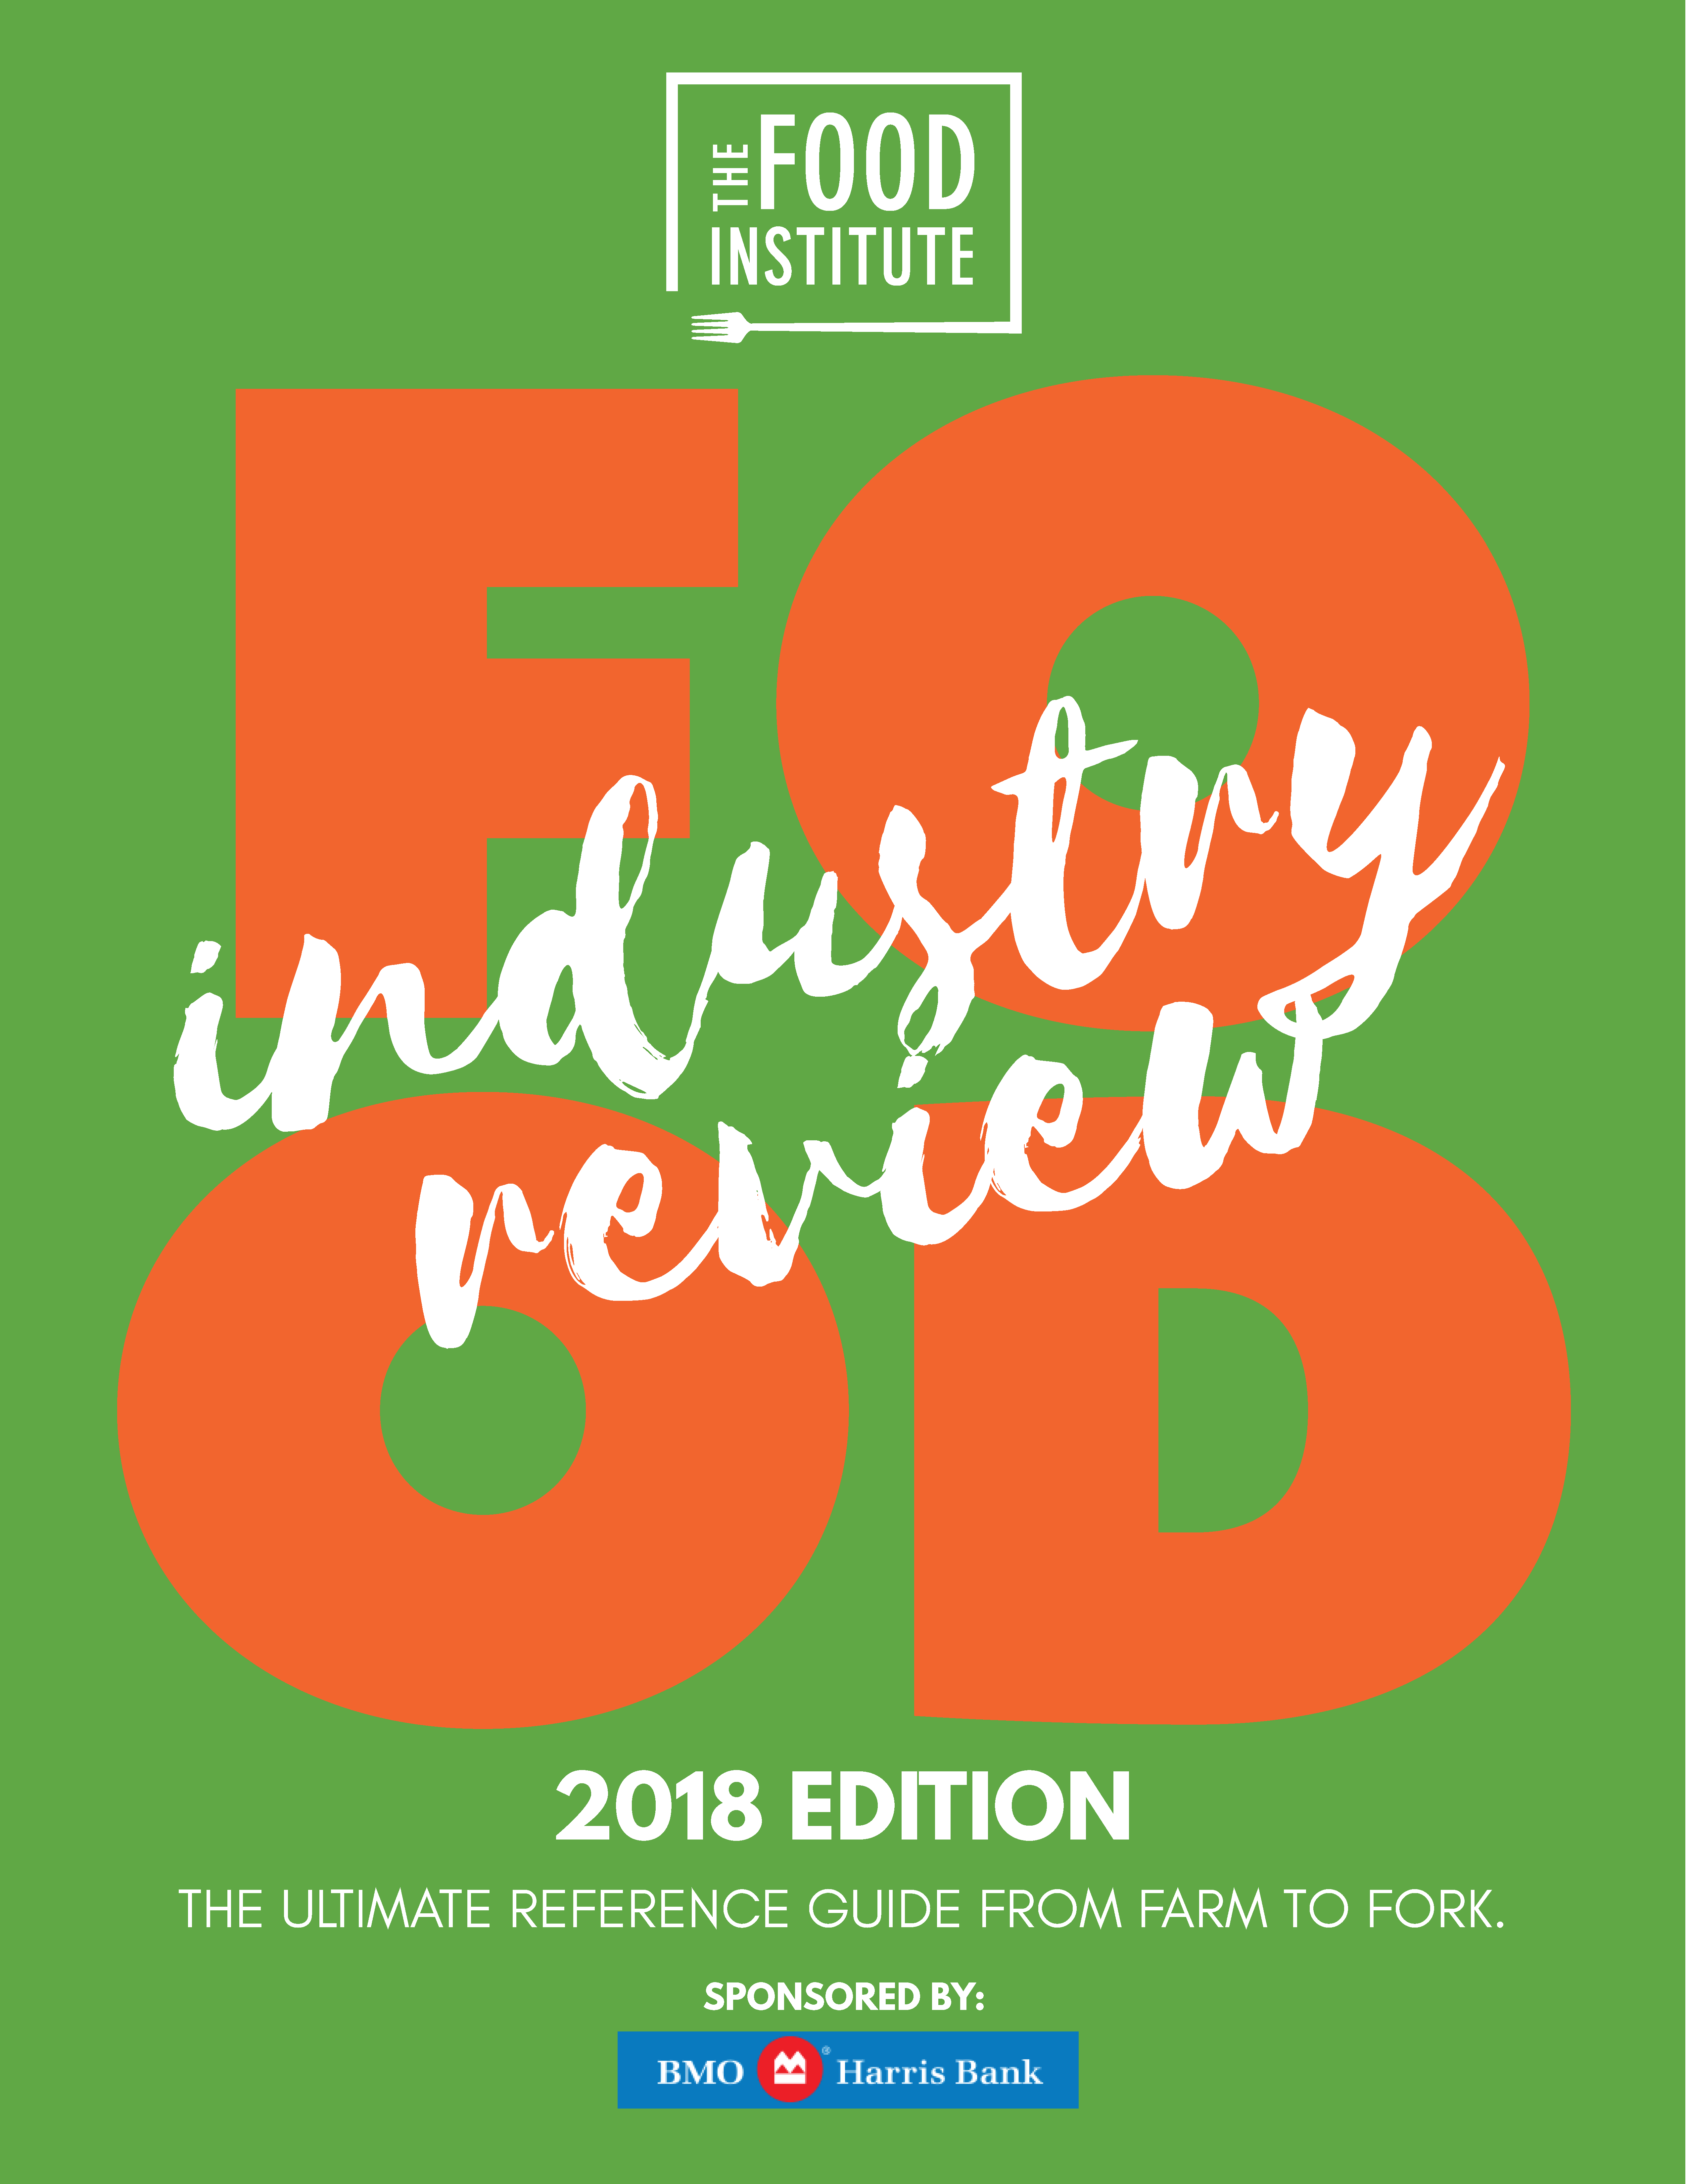 Food Industry Review, 2018 Edition